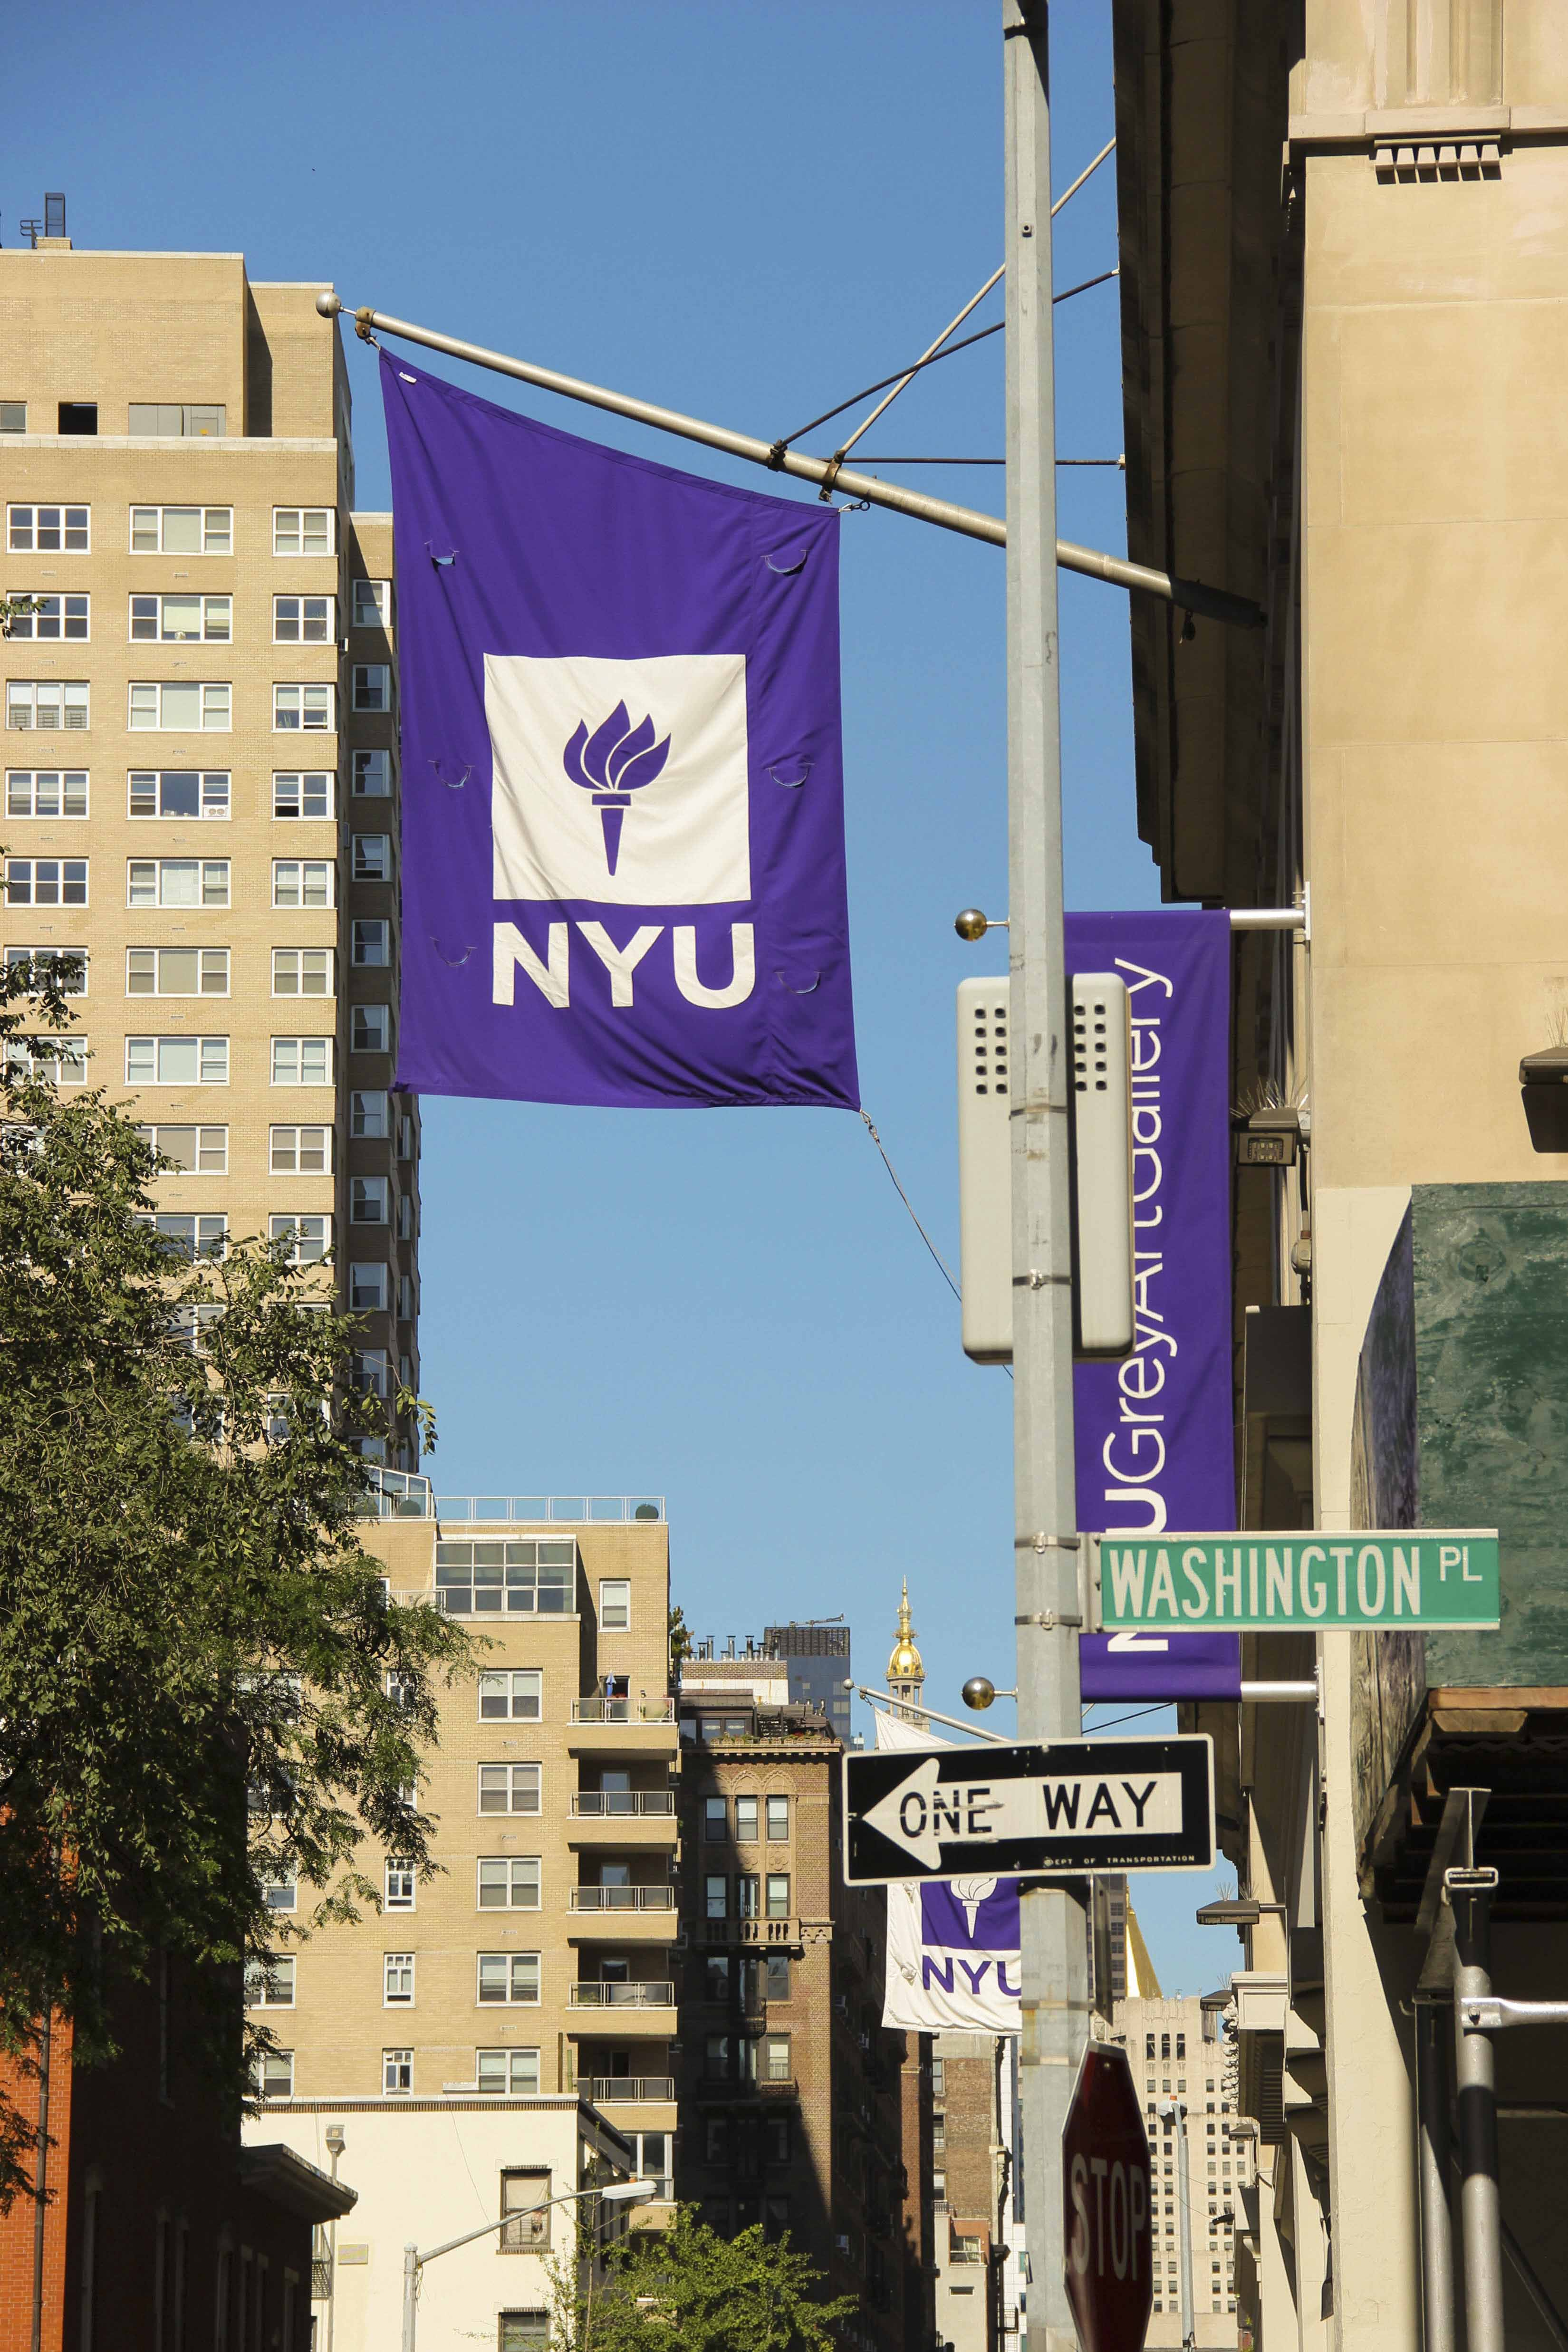 A number of NYU groups are petitioning for the university administration to divest from Aramark Corporation, which has received a number of accusations recently, including those of sexual harassment by its employees and maintaining unacceptable sanitary standards.